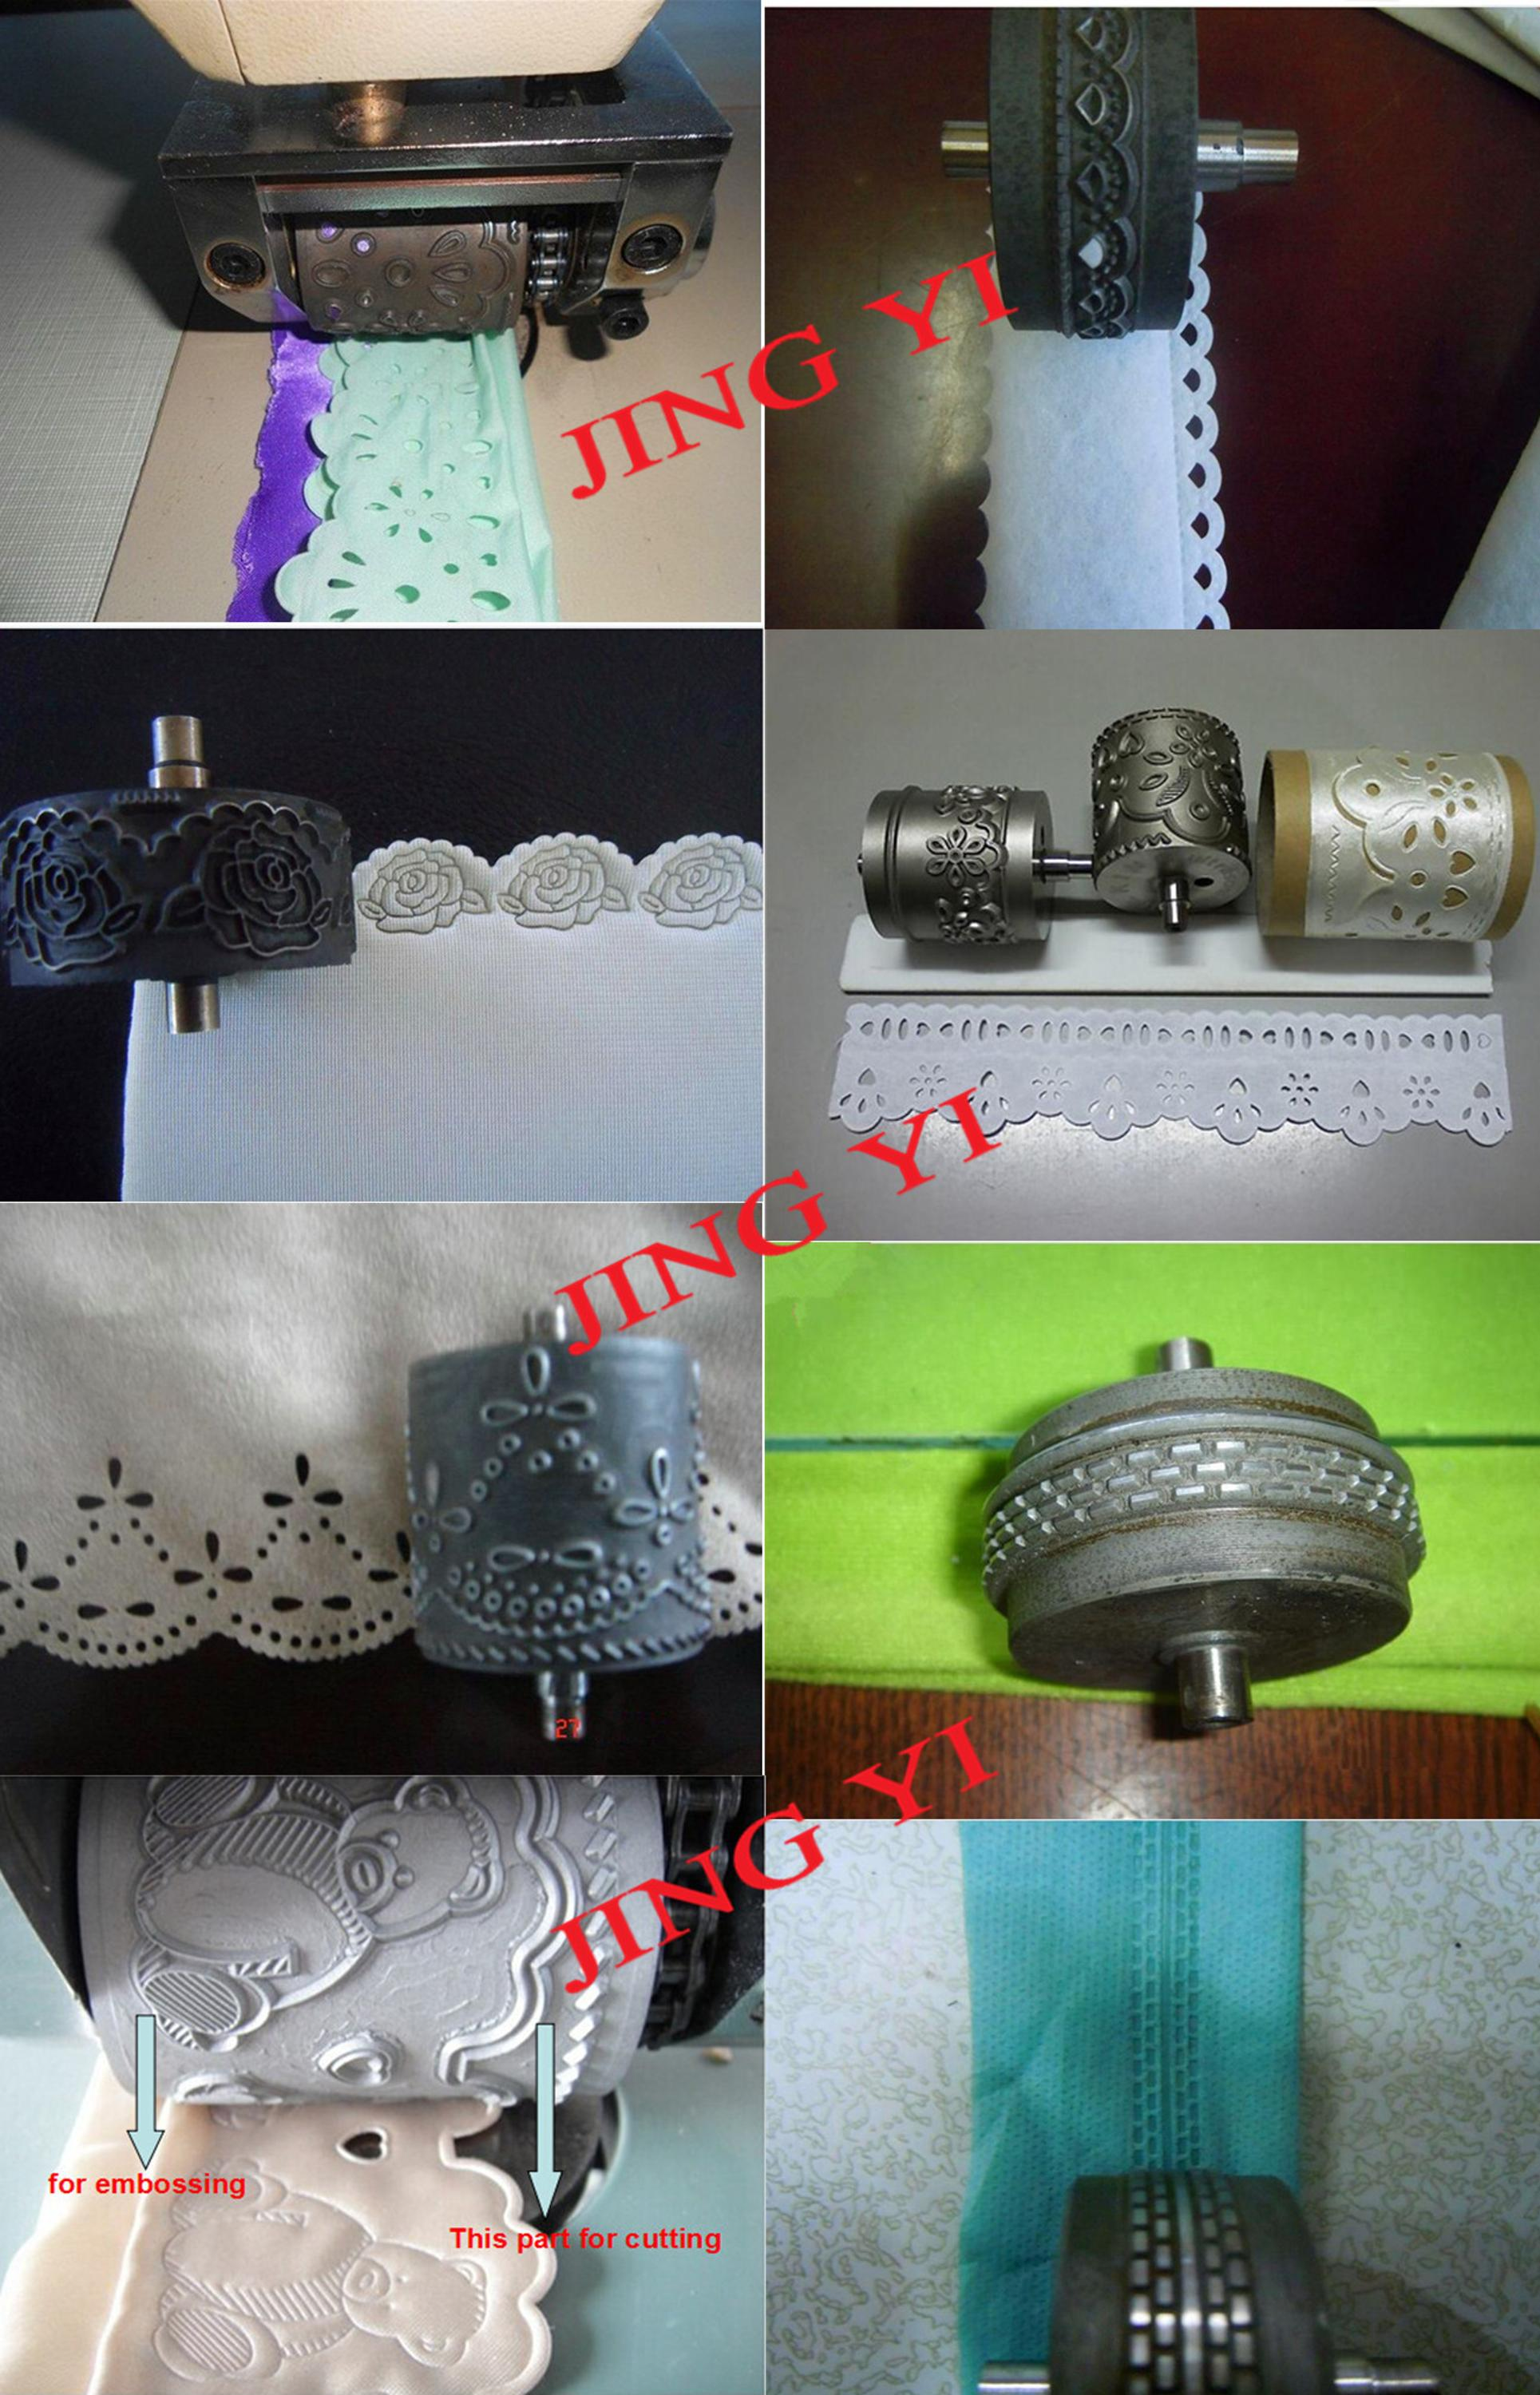 20KHz 1200w ultrasonic lace sewing embossing machine for tablecloth